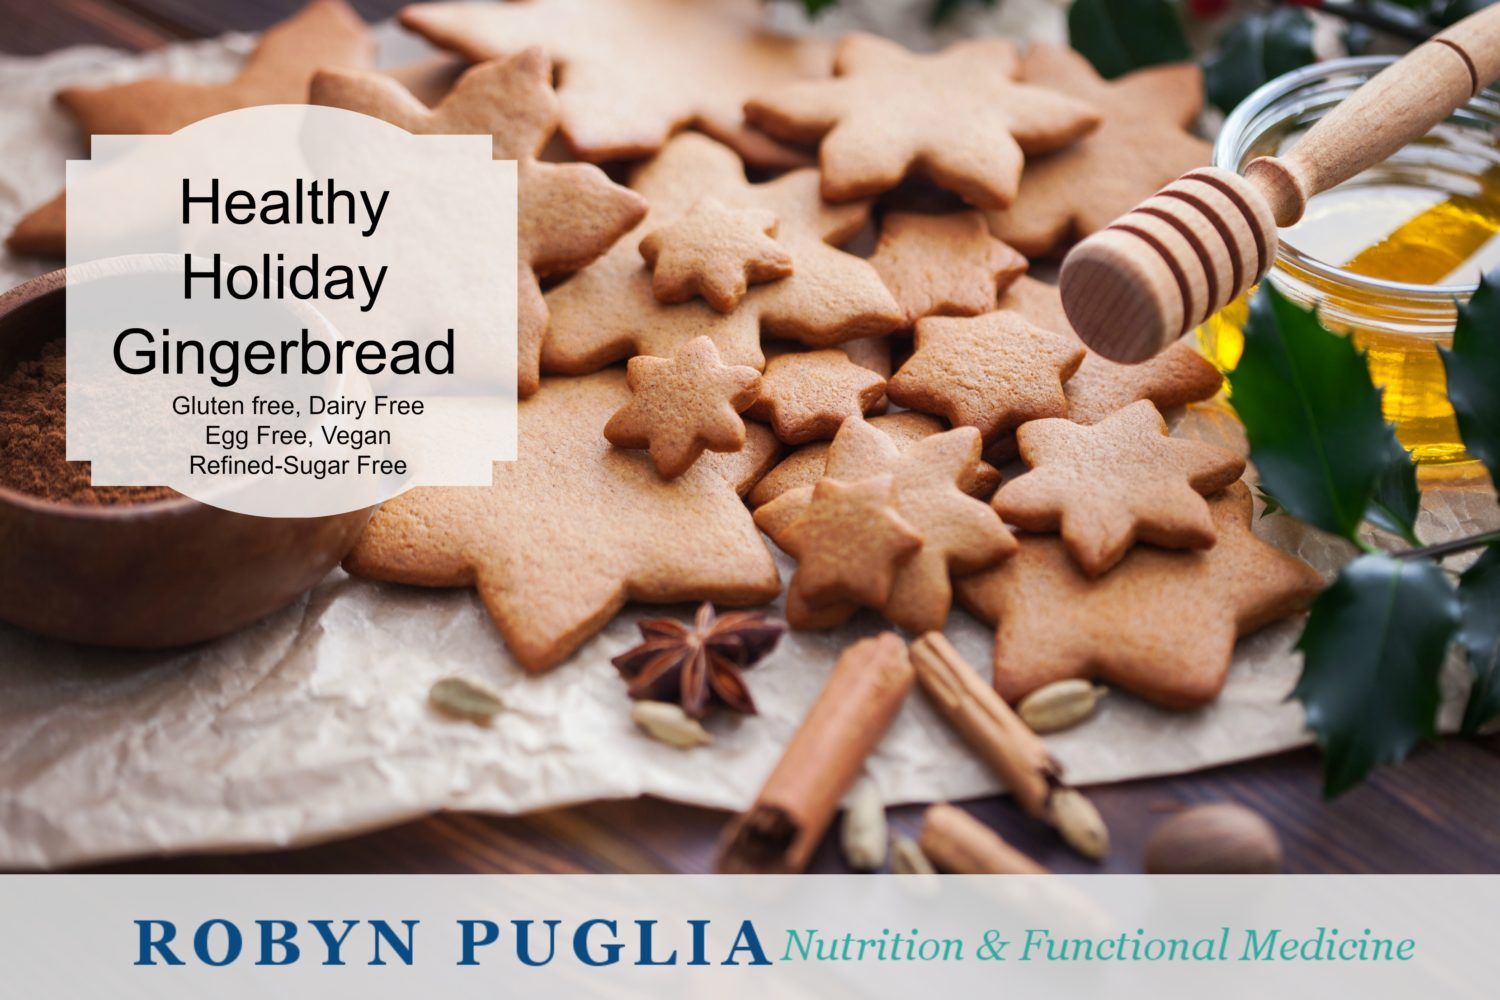 Healthy Holiday Gingerbread